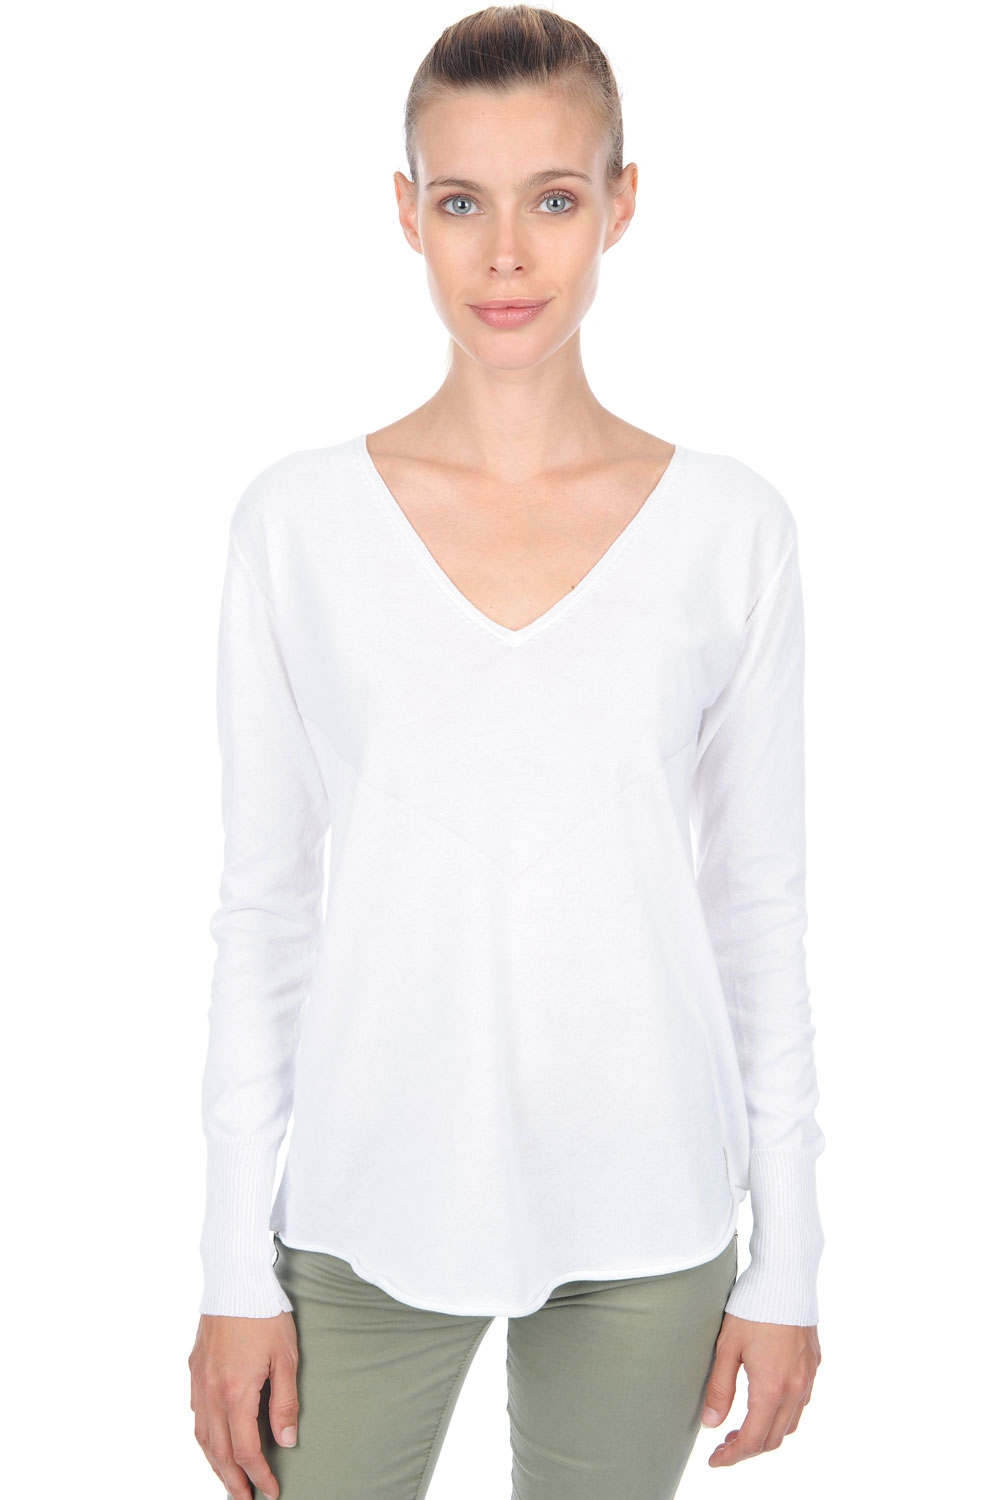 cotton giza 45 ladies v necks lyric white m